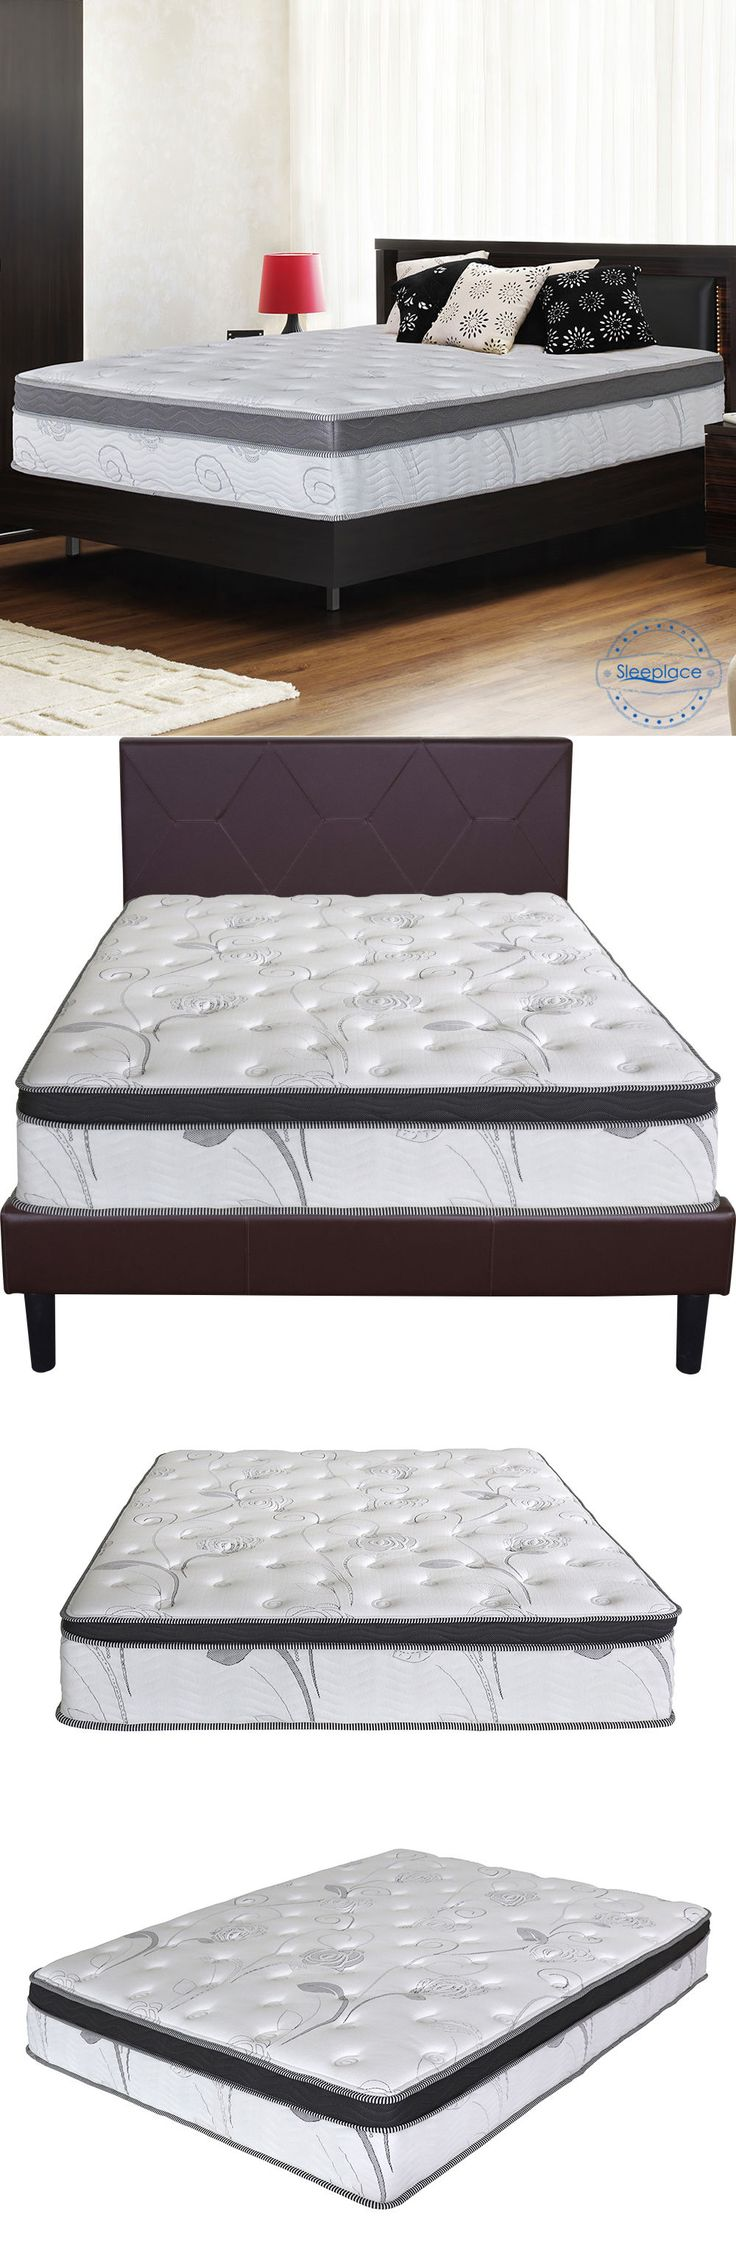 Bedding: Sleeplace 13 Euro Box Memory Foam Top Spring Mattress, Bed, Full Queen King BUY IT NOW ONLY: $266.77